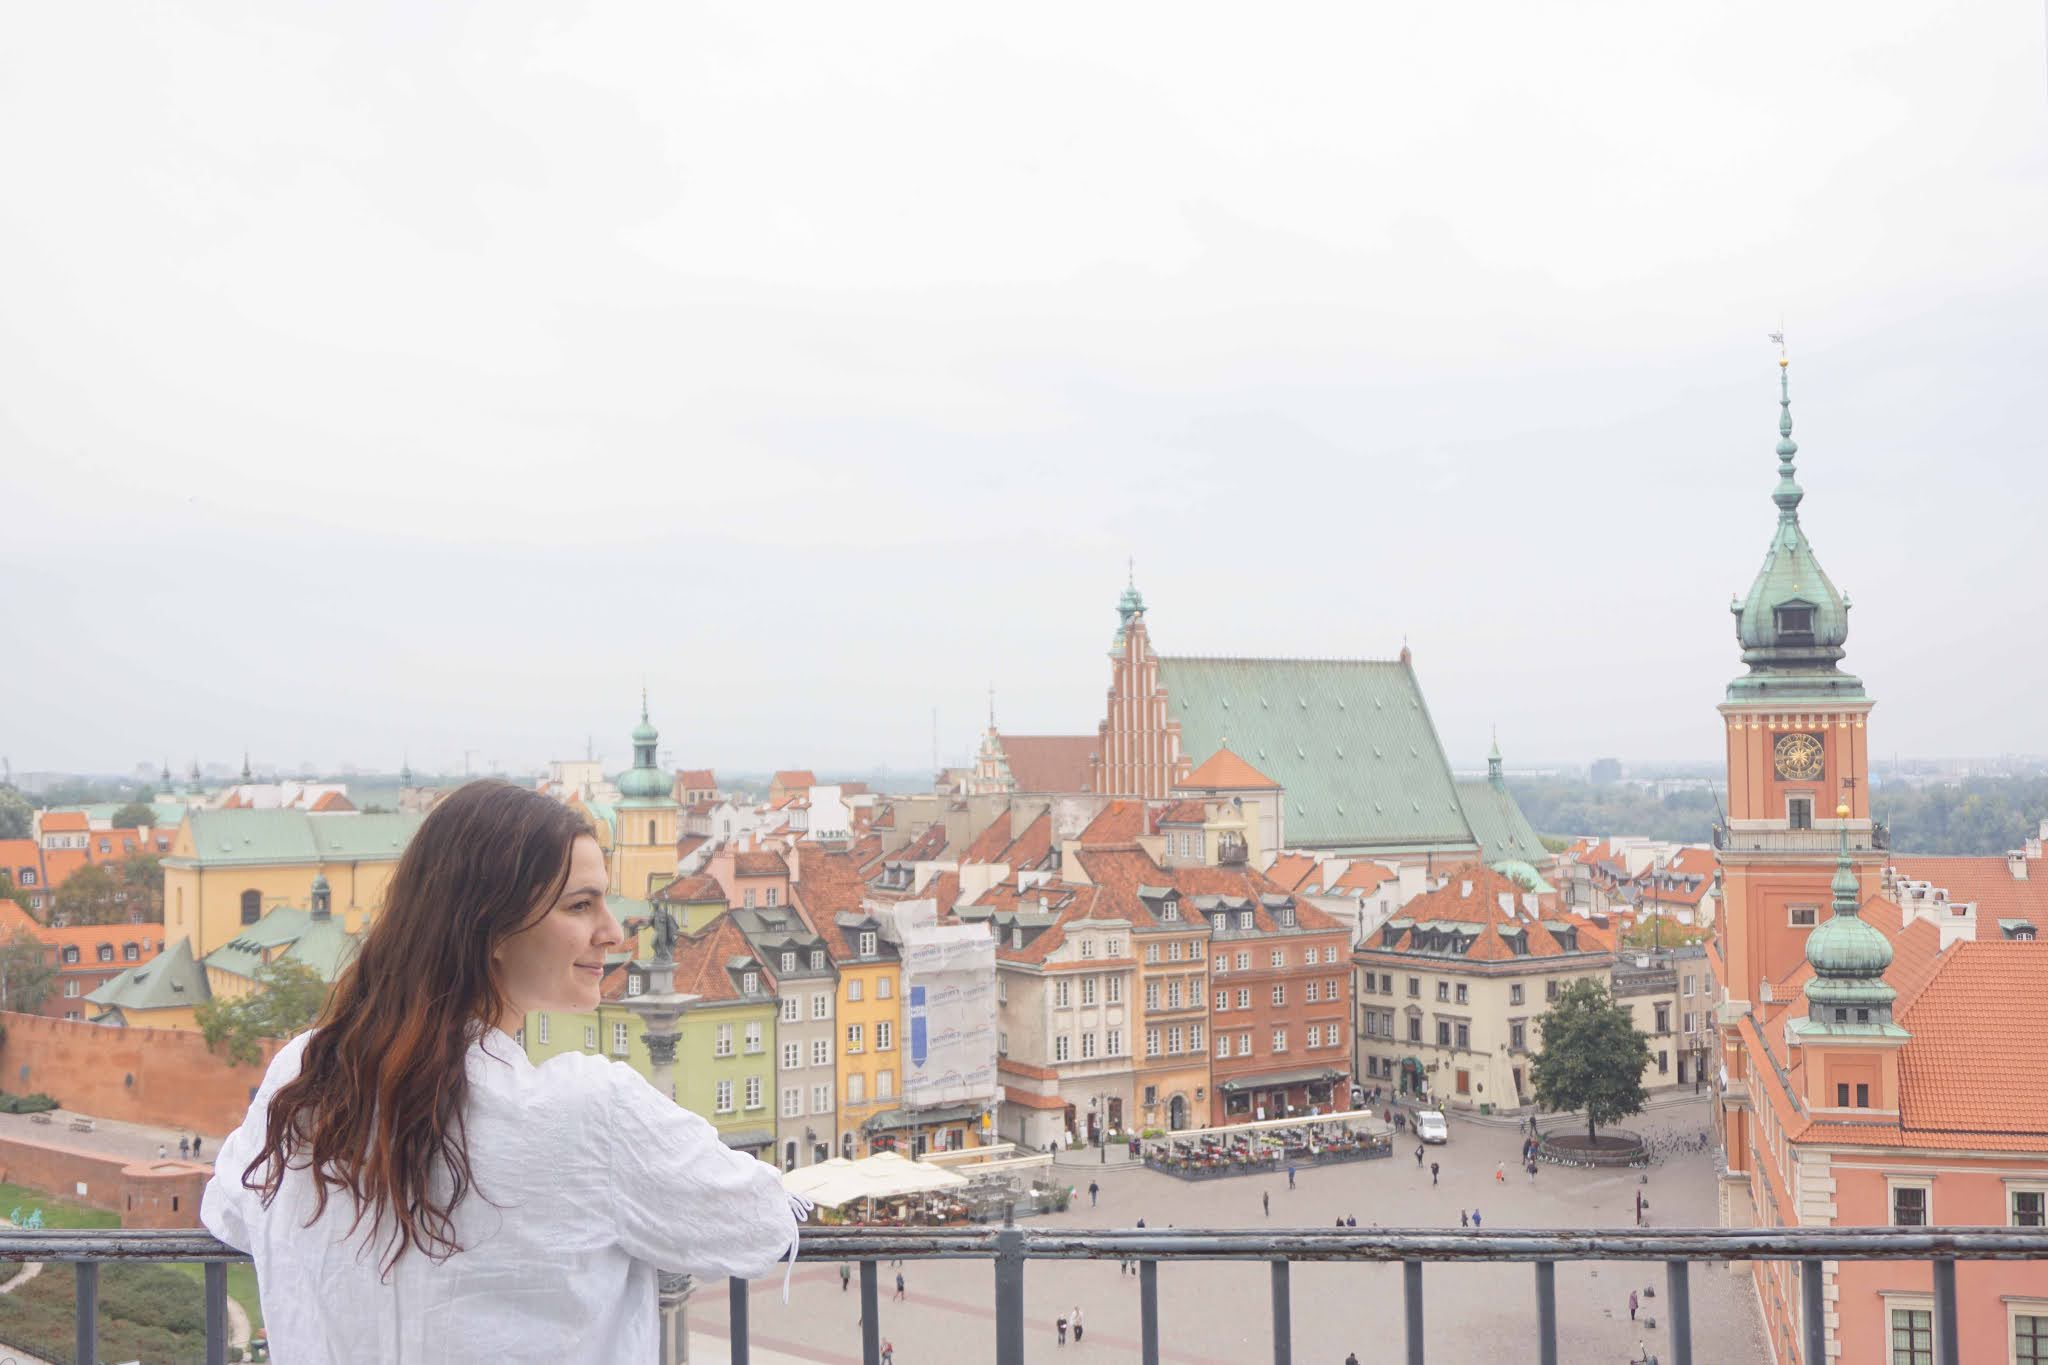 Warsaw Poland 3 Years as a Remote Worker: Blogging Coach, Social Media Manager, & Travel Writer